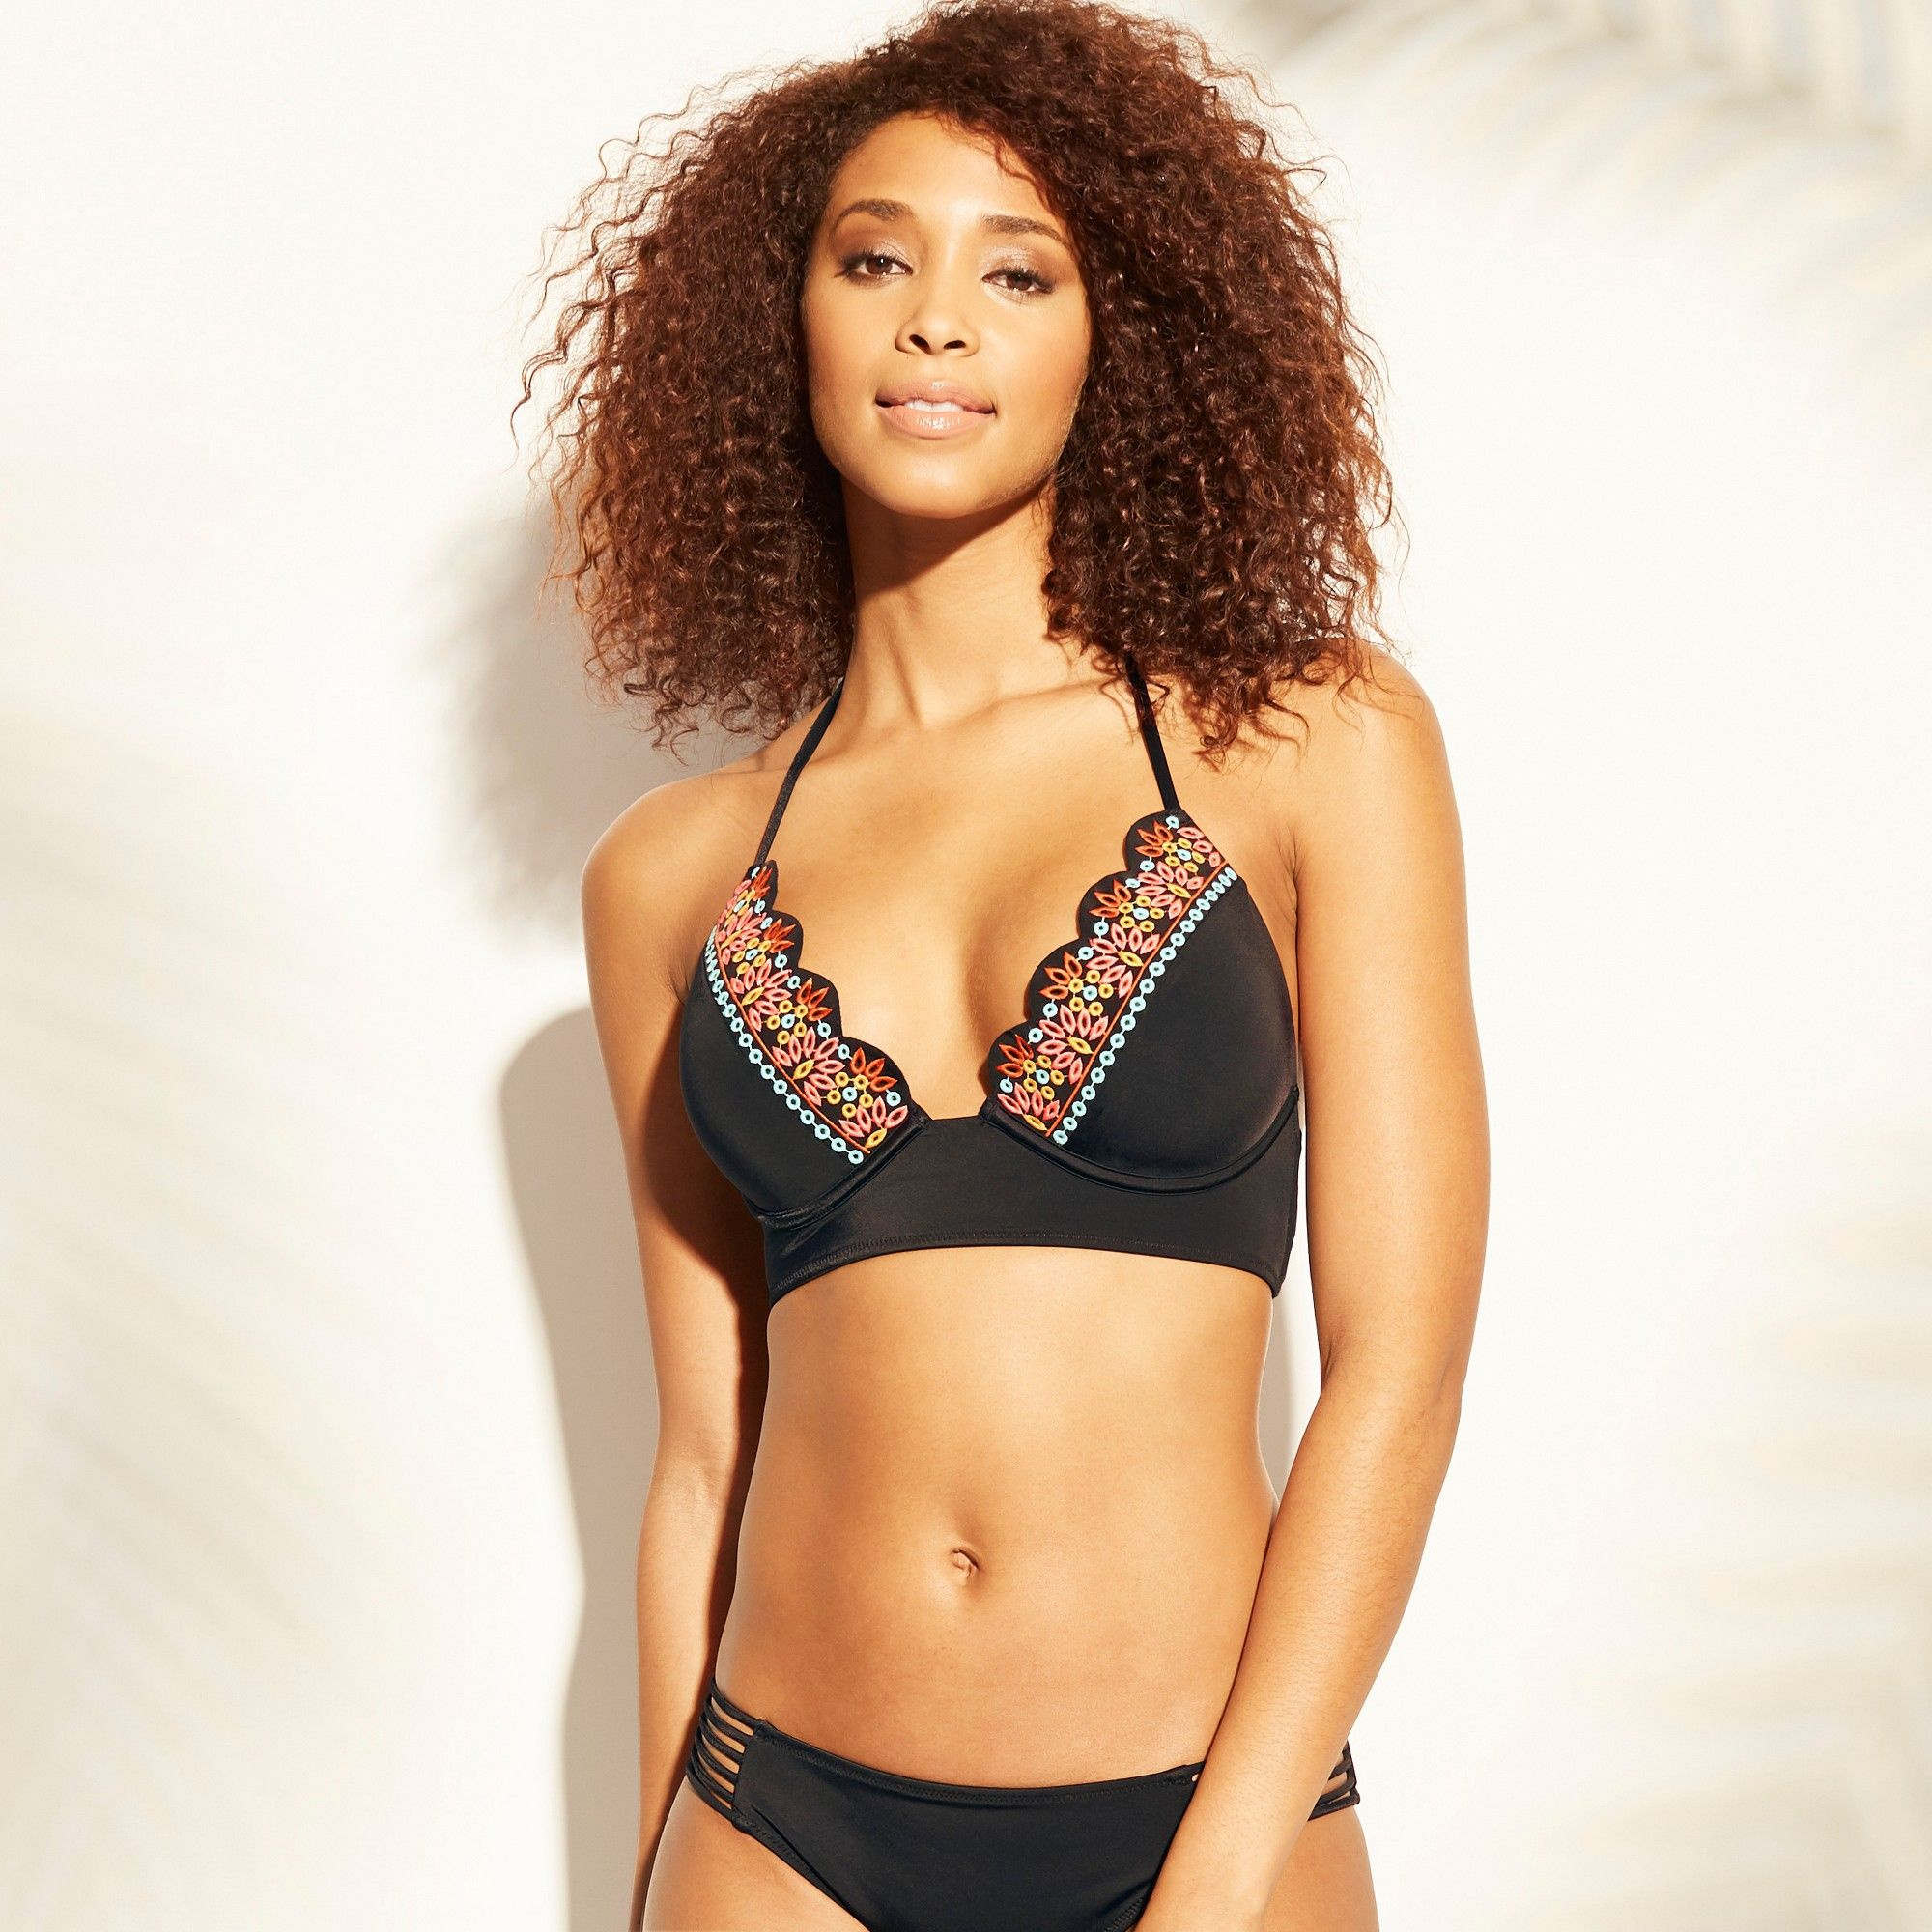 508f1822588 Women's Tropics Light Lift Eyelet Trim Triangle Bikini Top - Shade & Shore  Black 38B